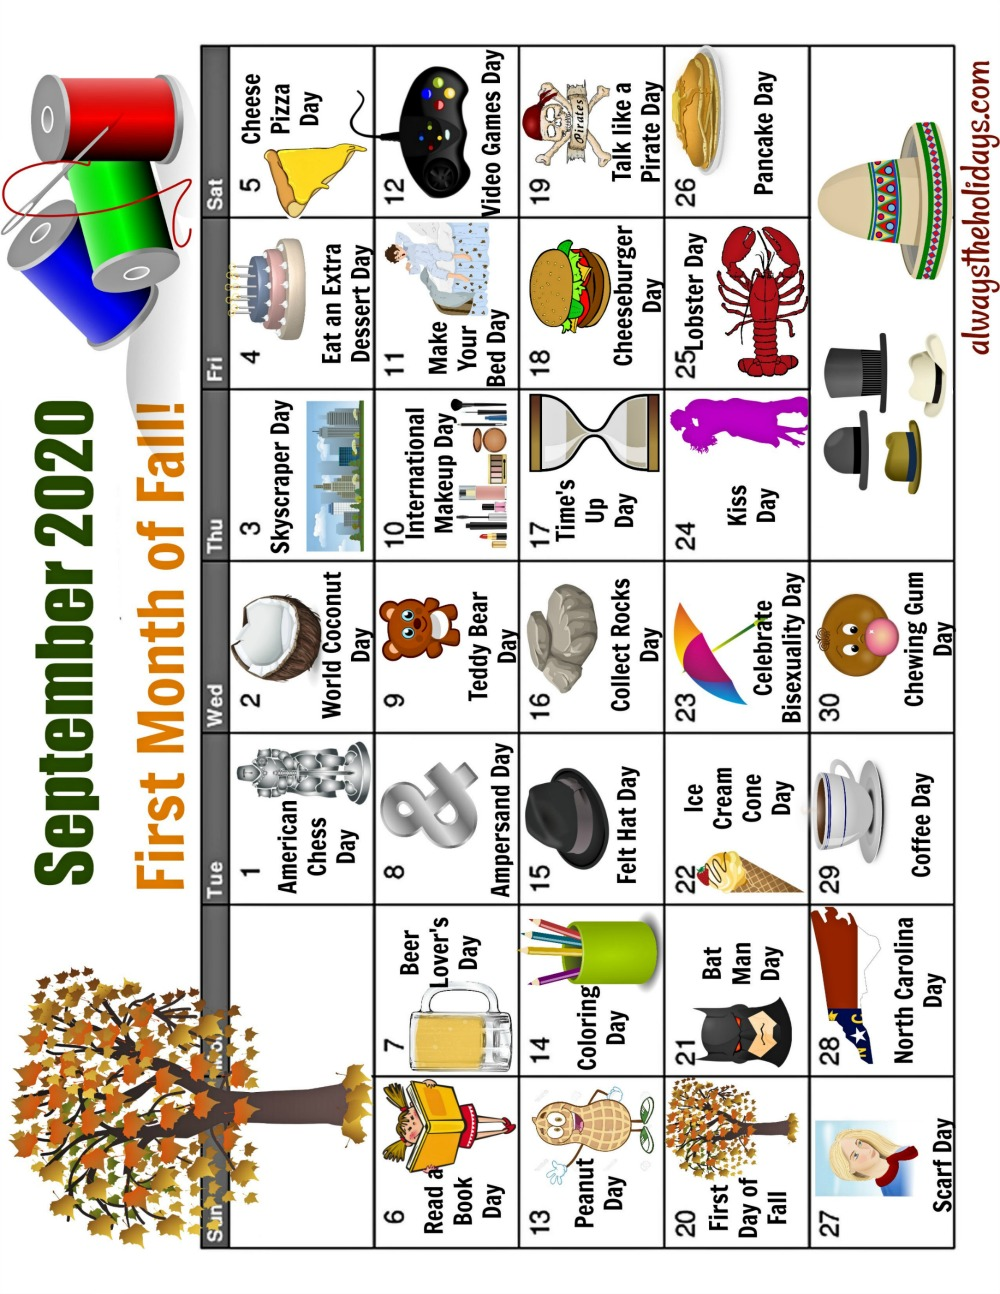 September calendar printable for National Days